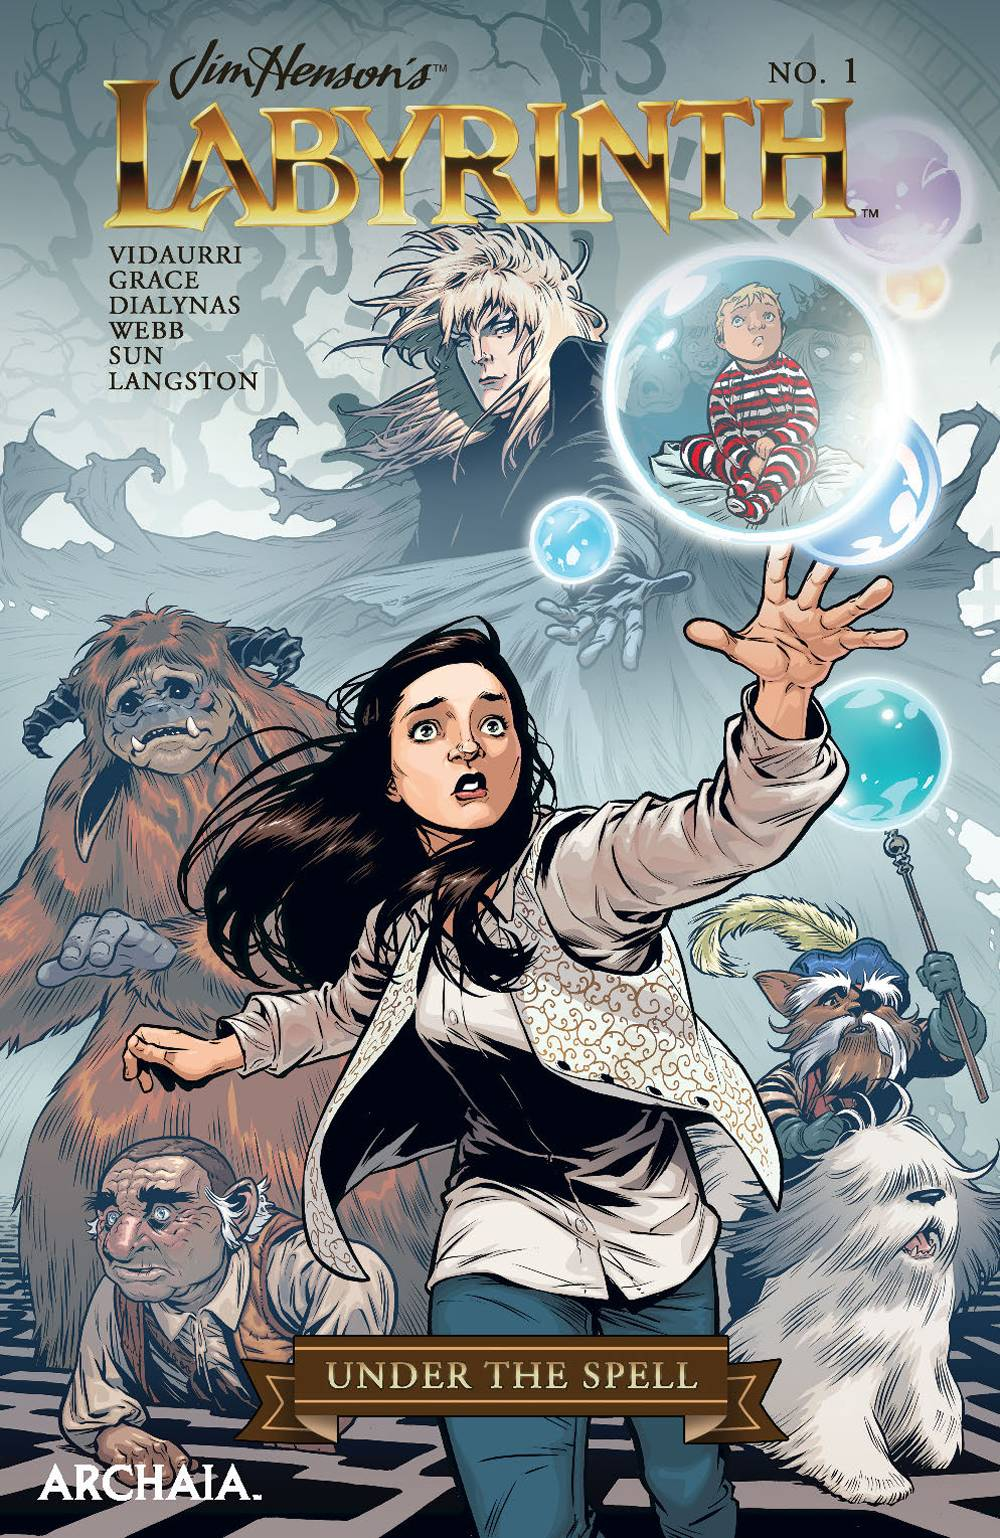 Jim Henson's Labyrinth: Under The Spell #1 (2018)